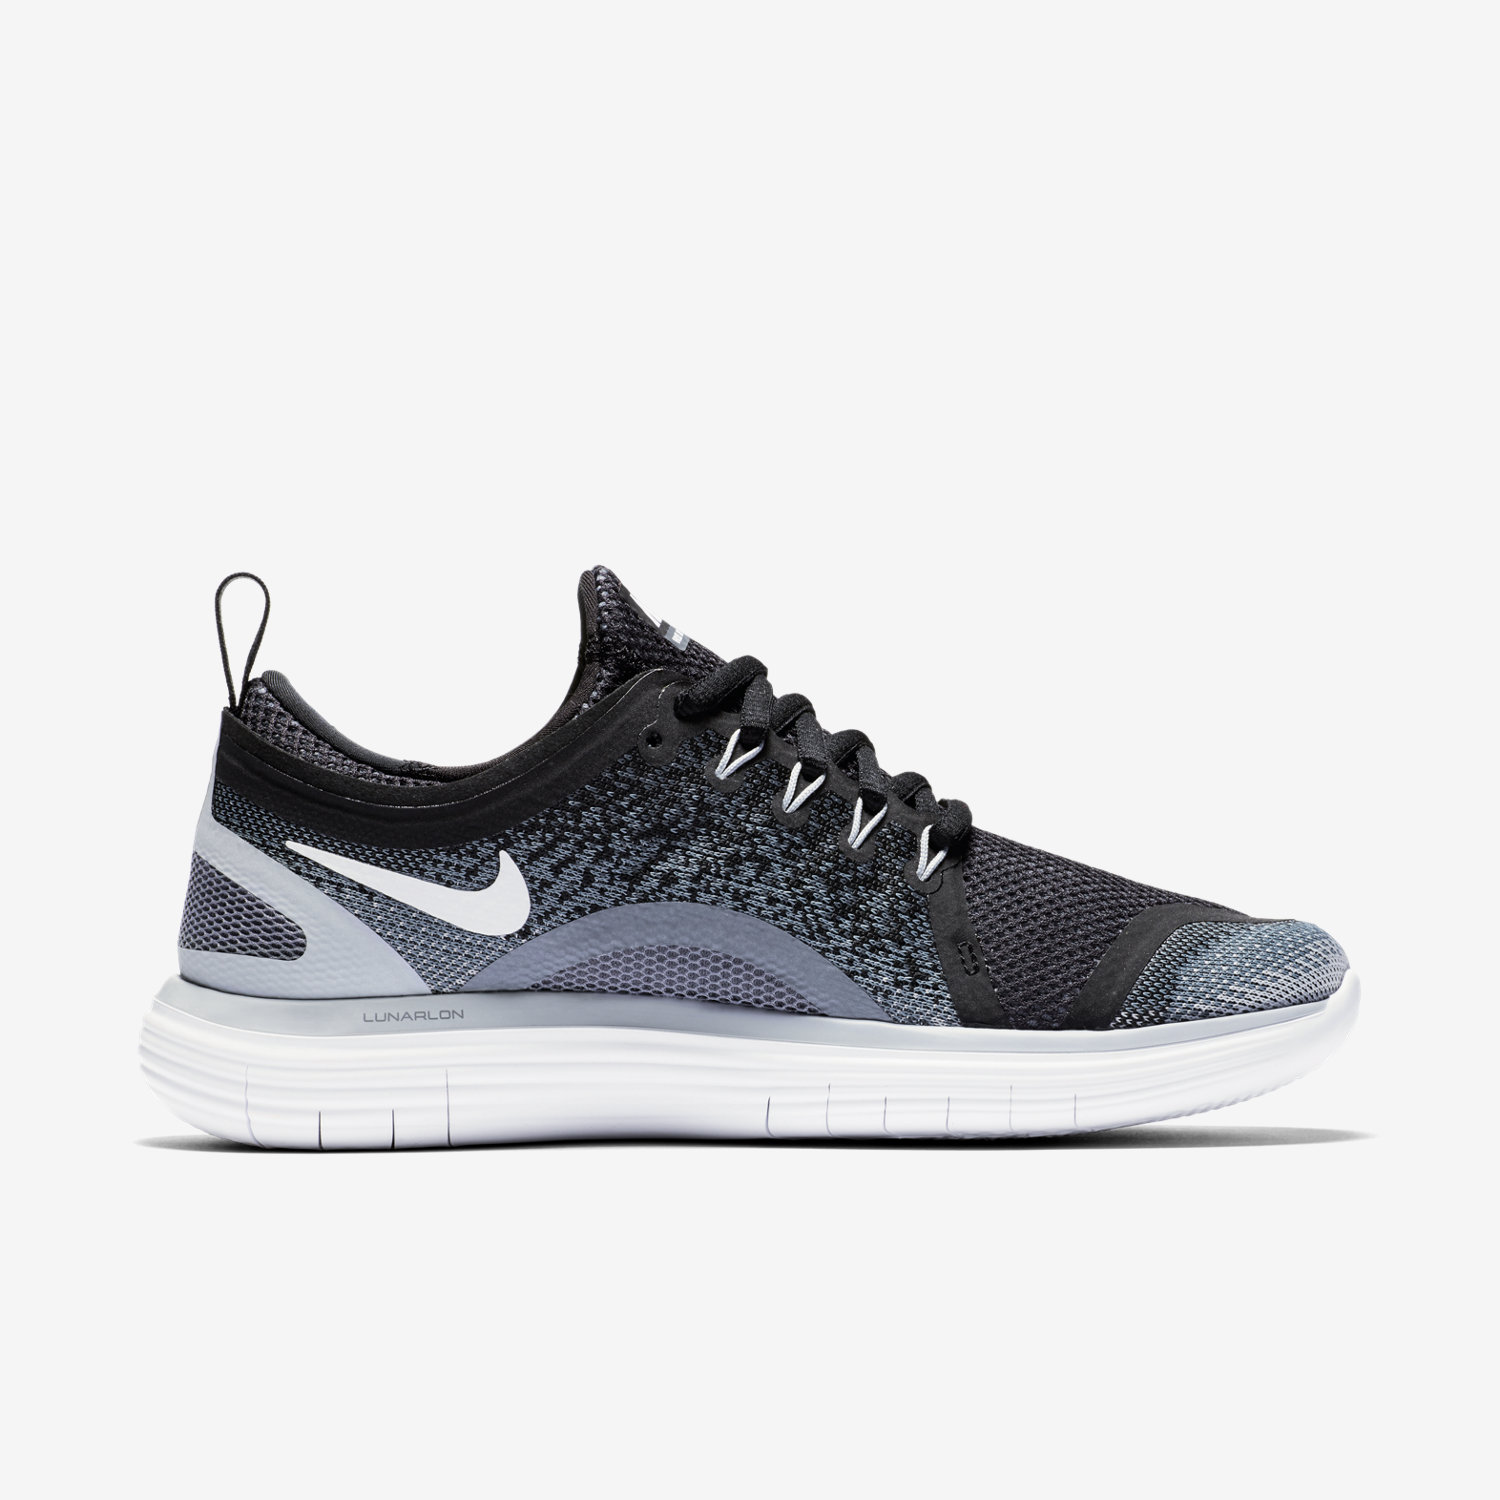 nike silver lunarlon nike womens shoes